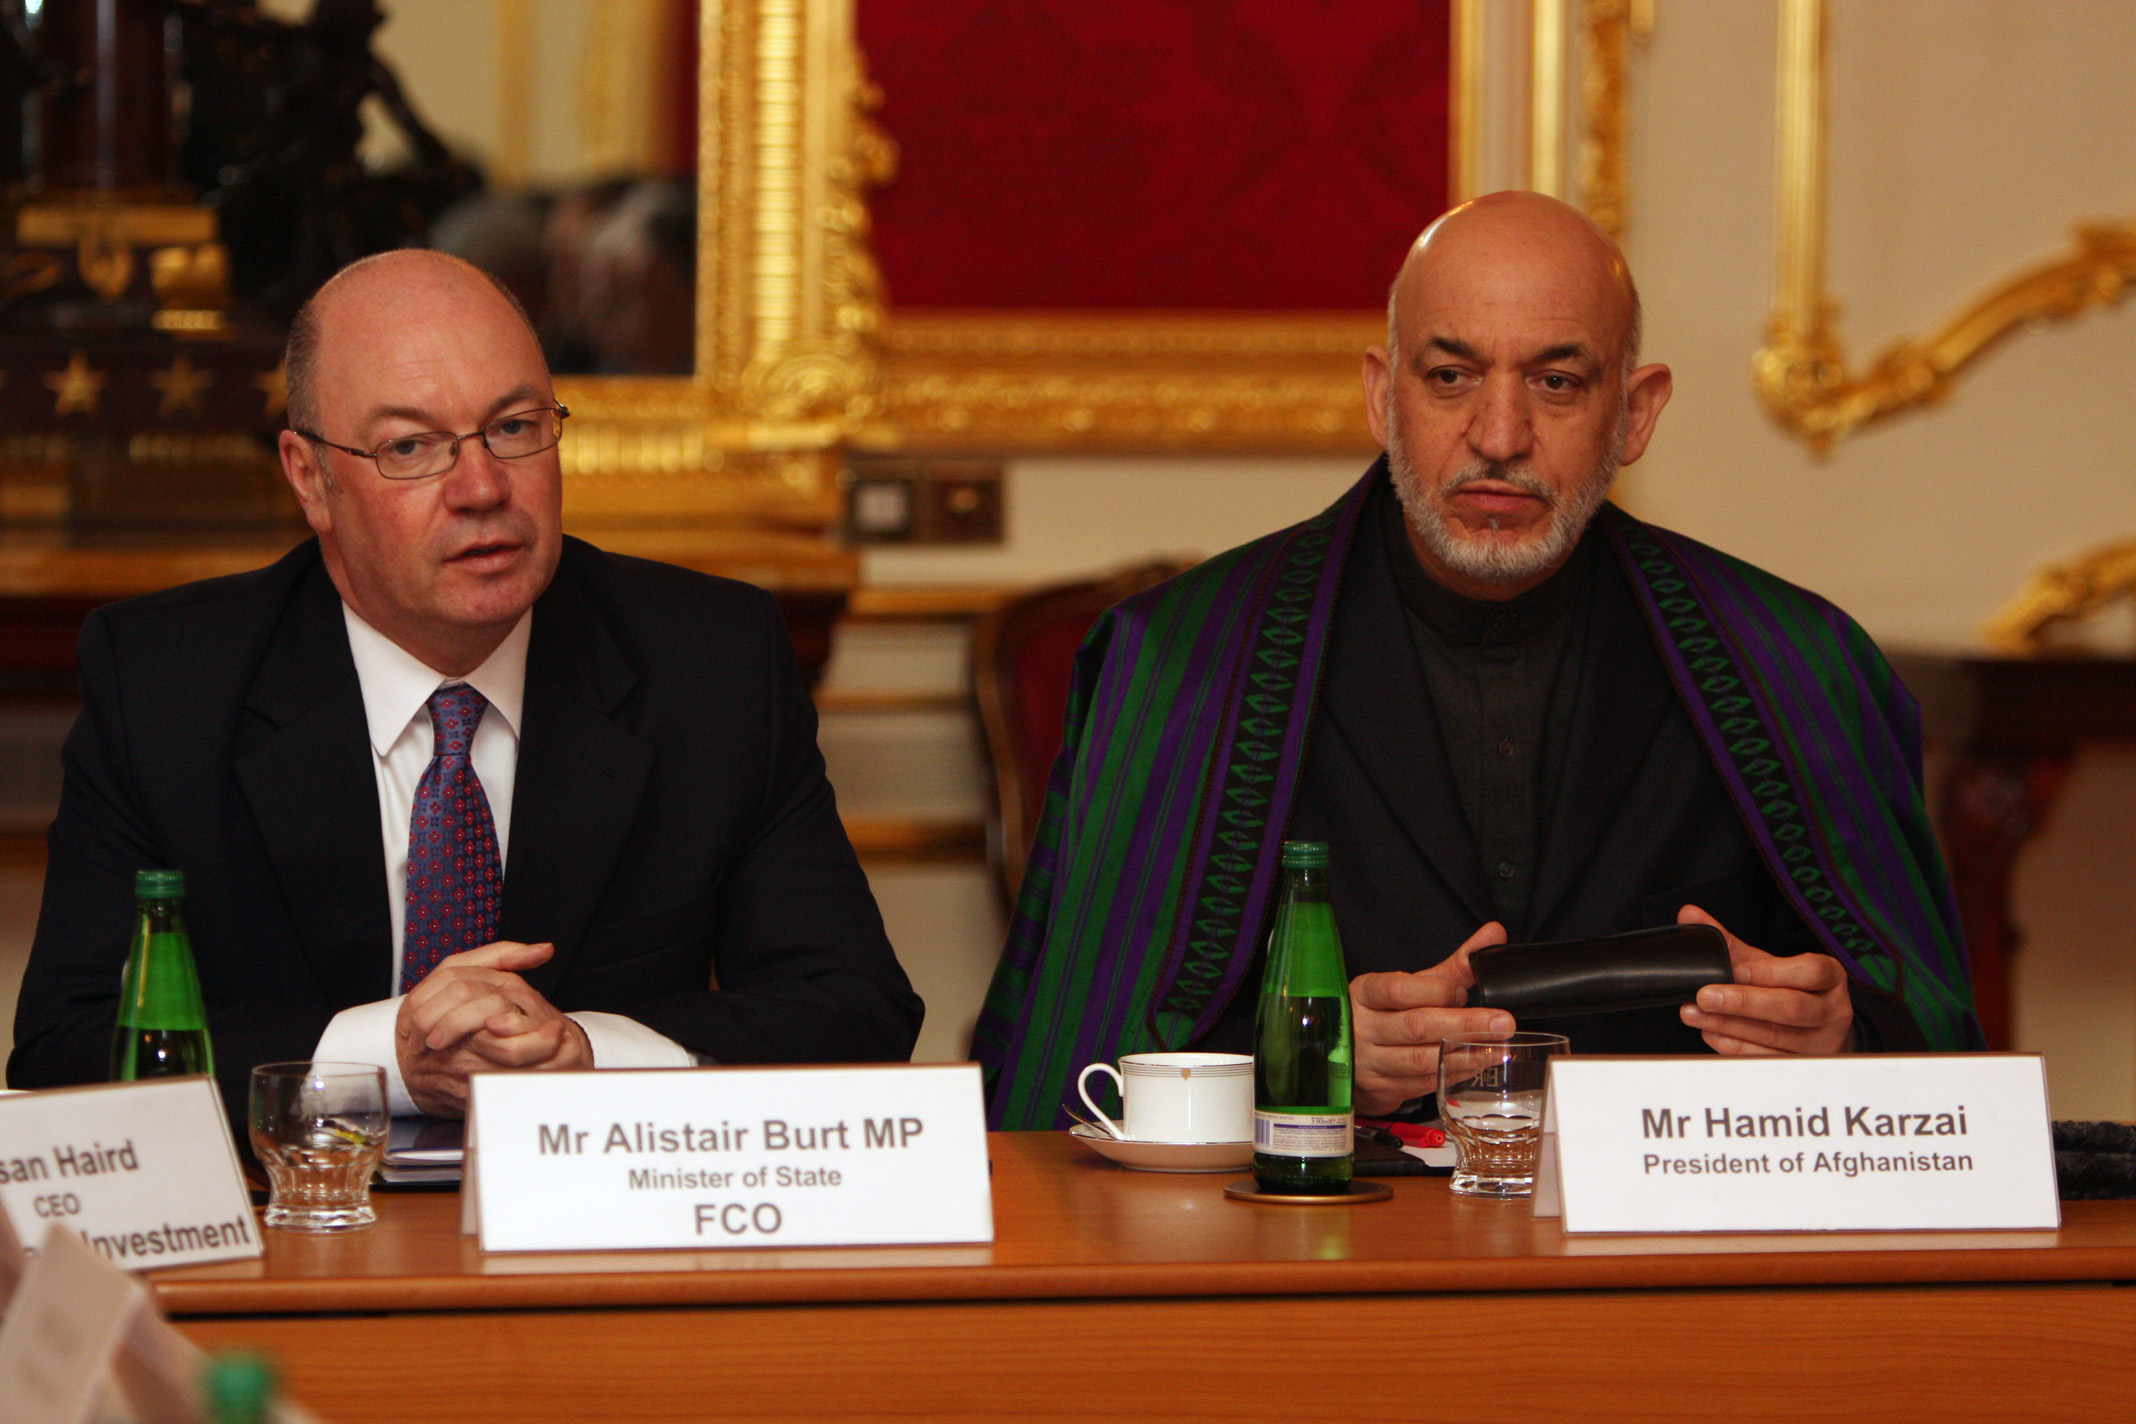 Afghan President Karzai Hamid: biography, activities and interesting facts 83